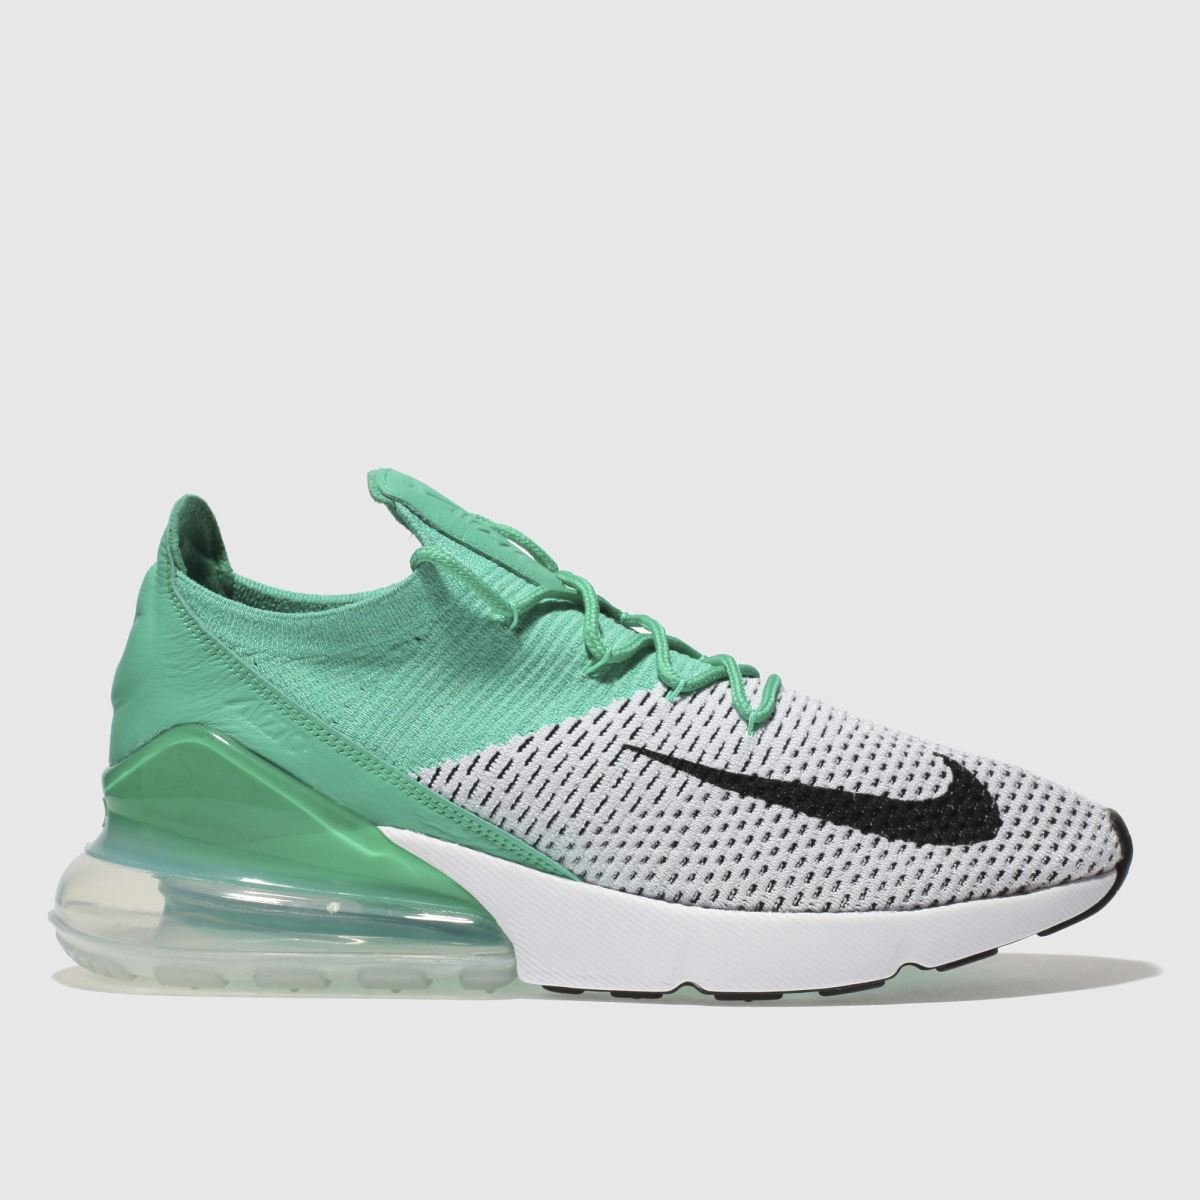 Nike Turquoise Air Max 270 Flyknit Trainers